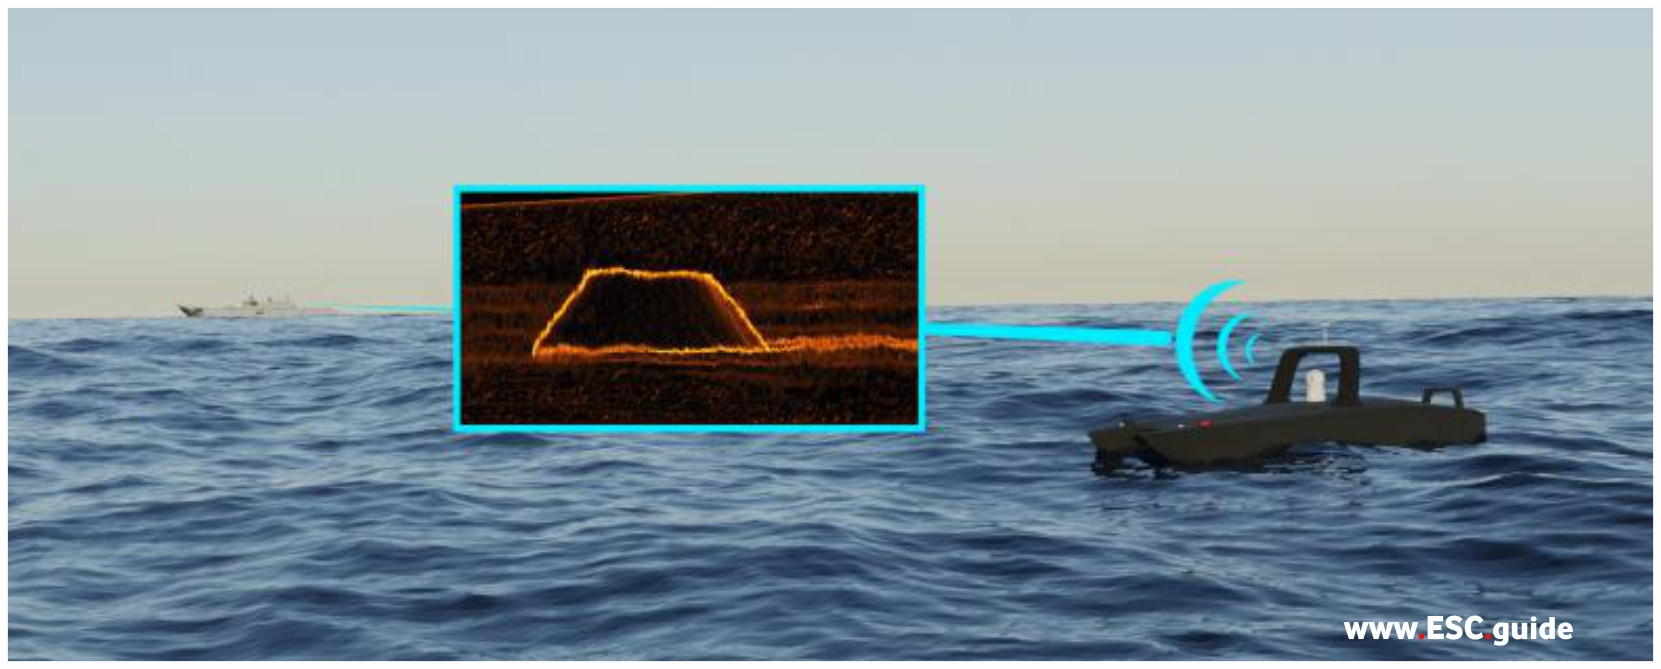 MANTAS T12 locates a mine on the bottom and sends real-time video back to a command vessel offshore.